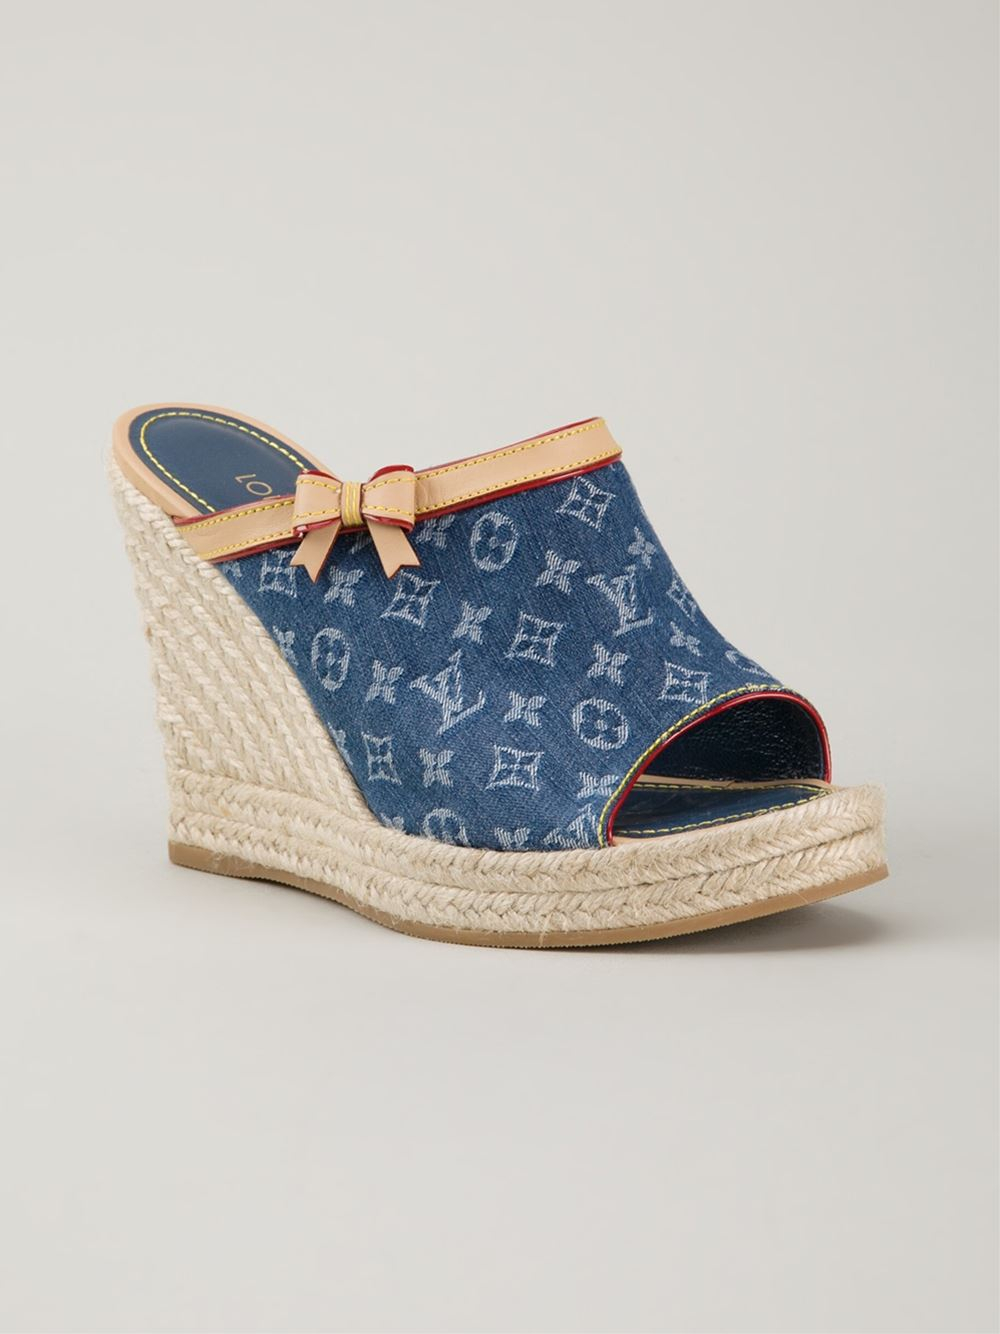 6e4008088137 Lyst - Louis Vuitton Monogram Denim Mules in Blue